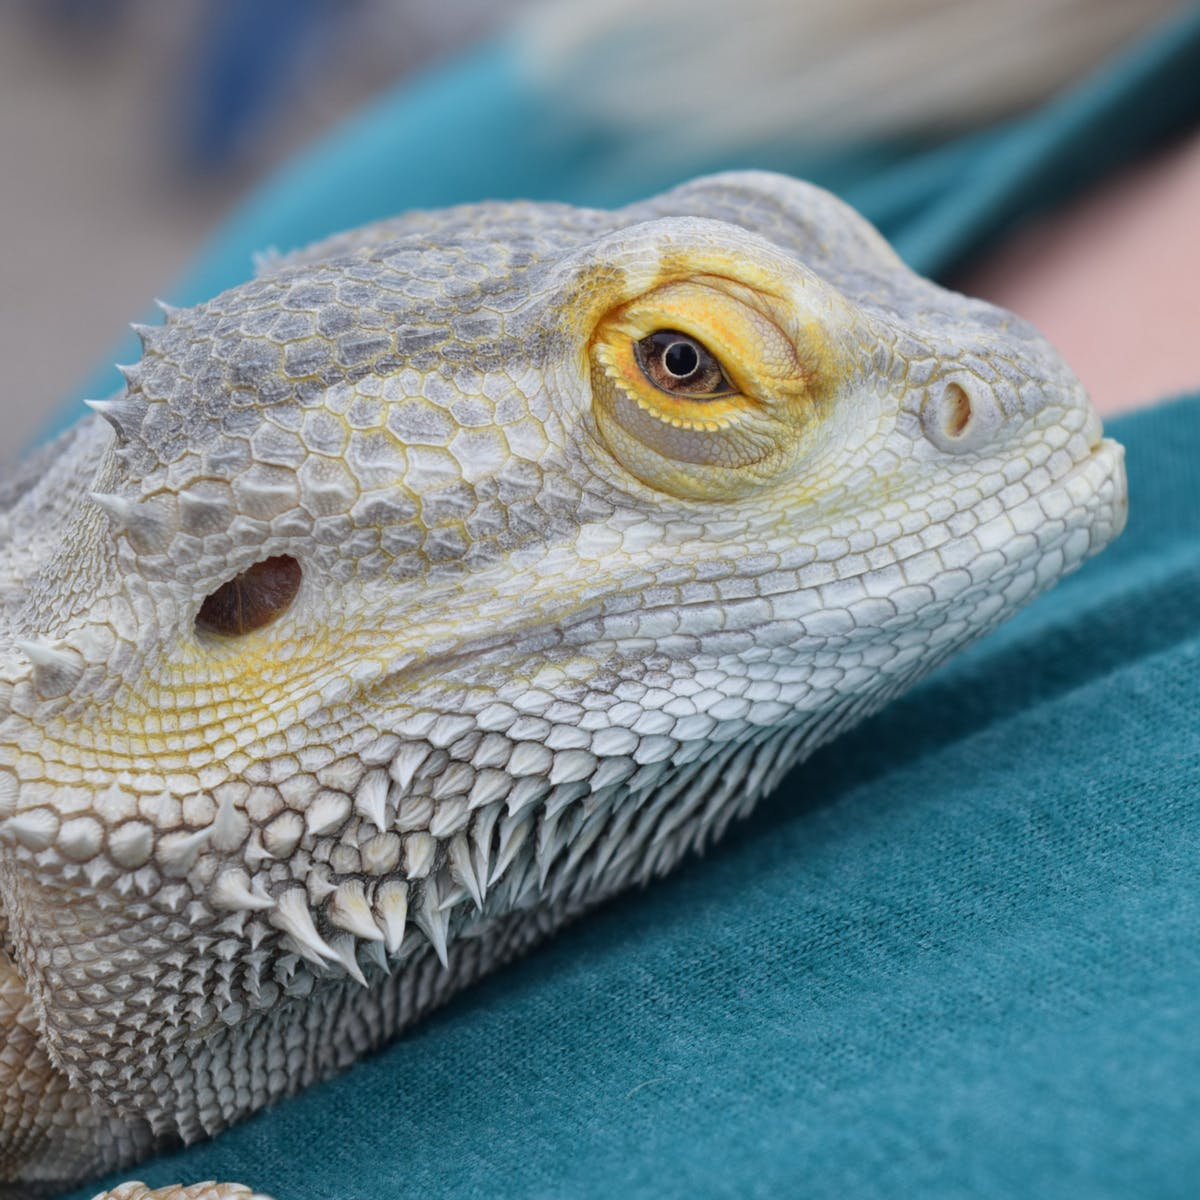 a close up of a bearded dragon